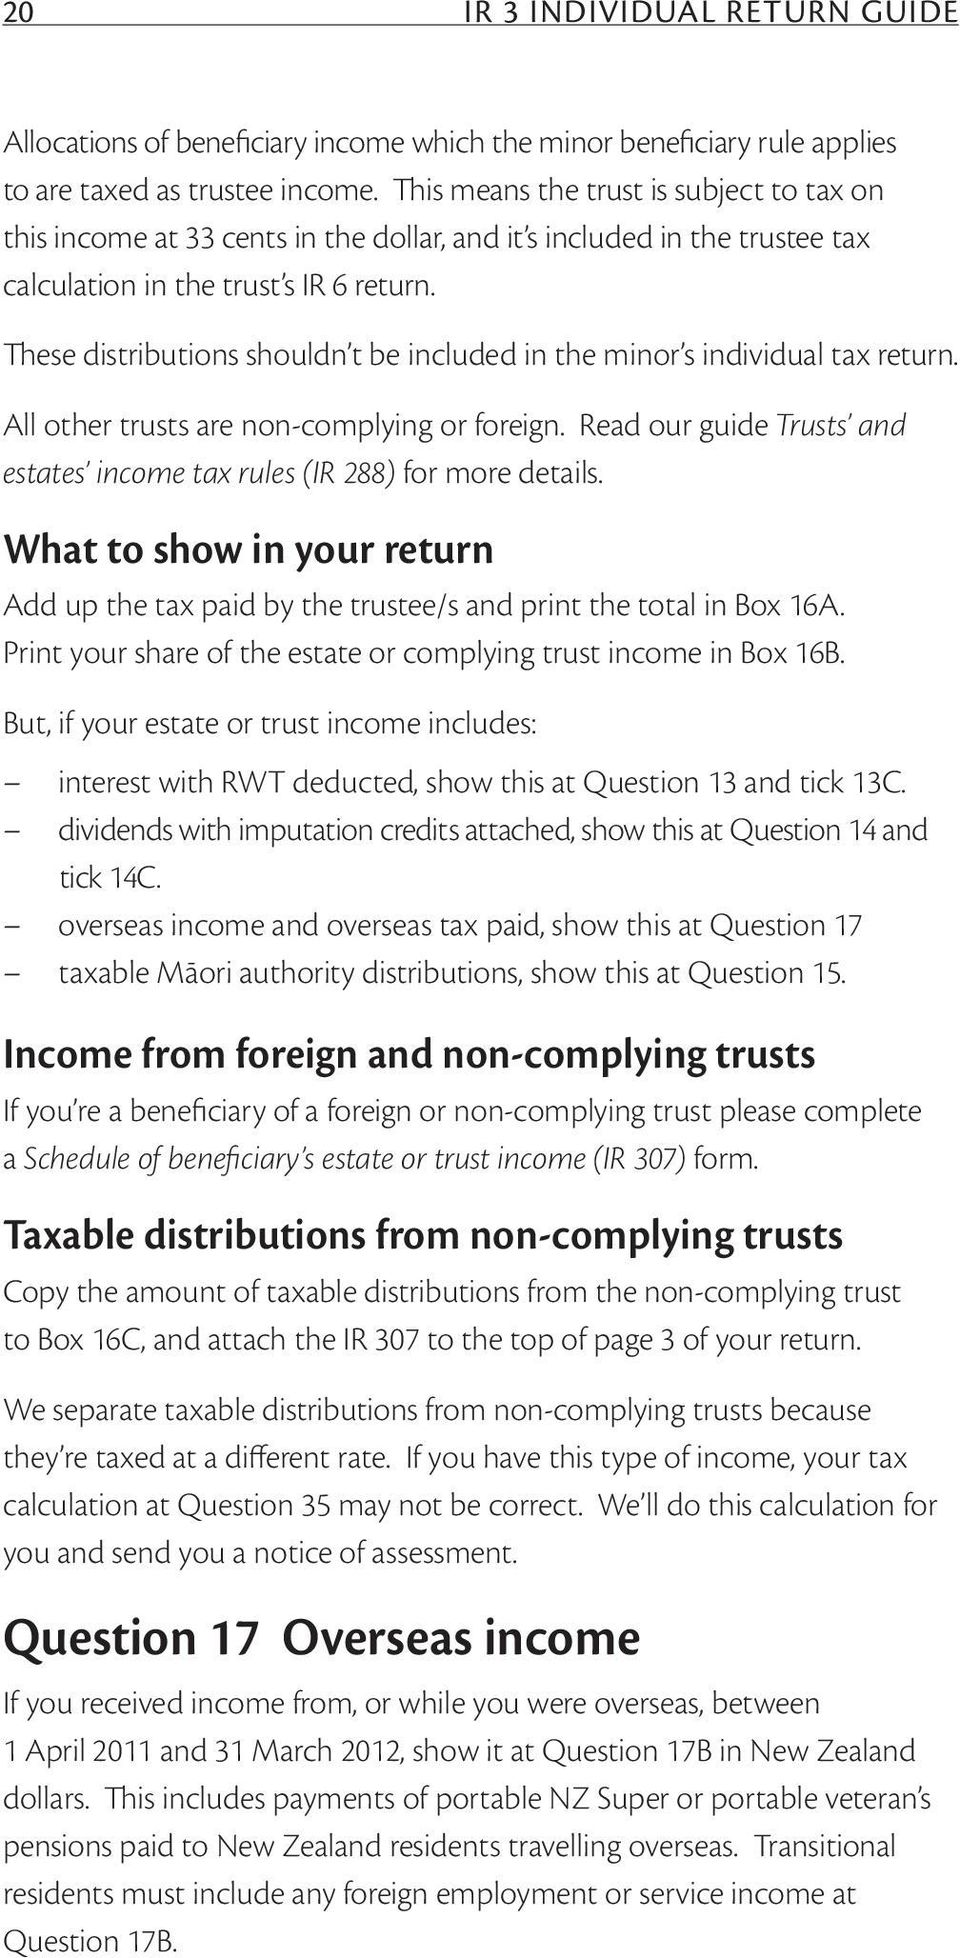 These distributions shouldn t be included in the minor s individual tax return. All other trusts are non-complying or foreign.